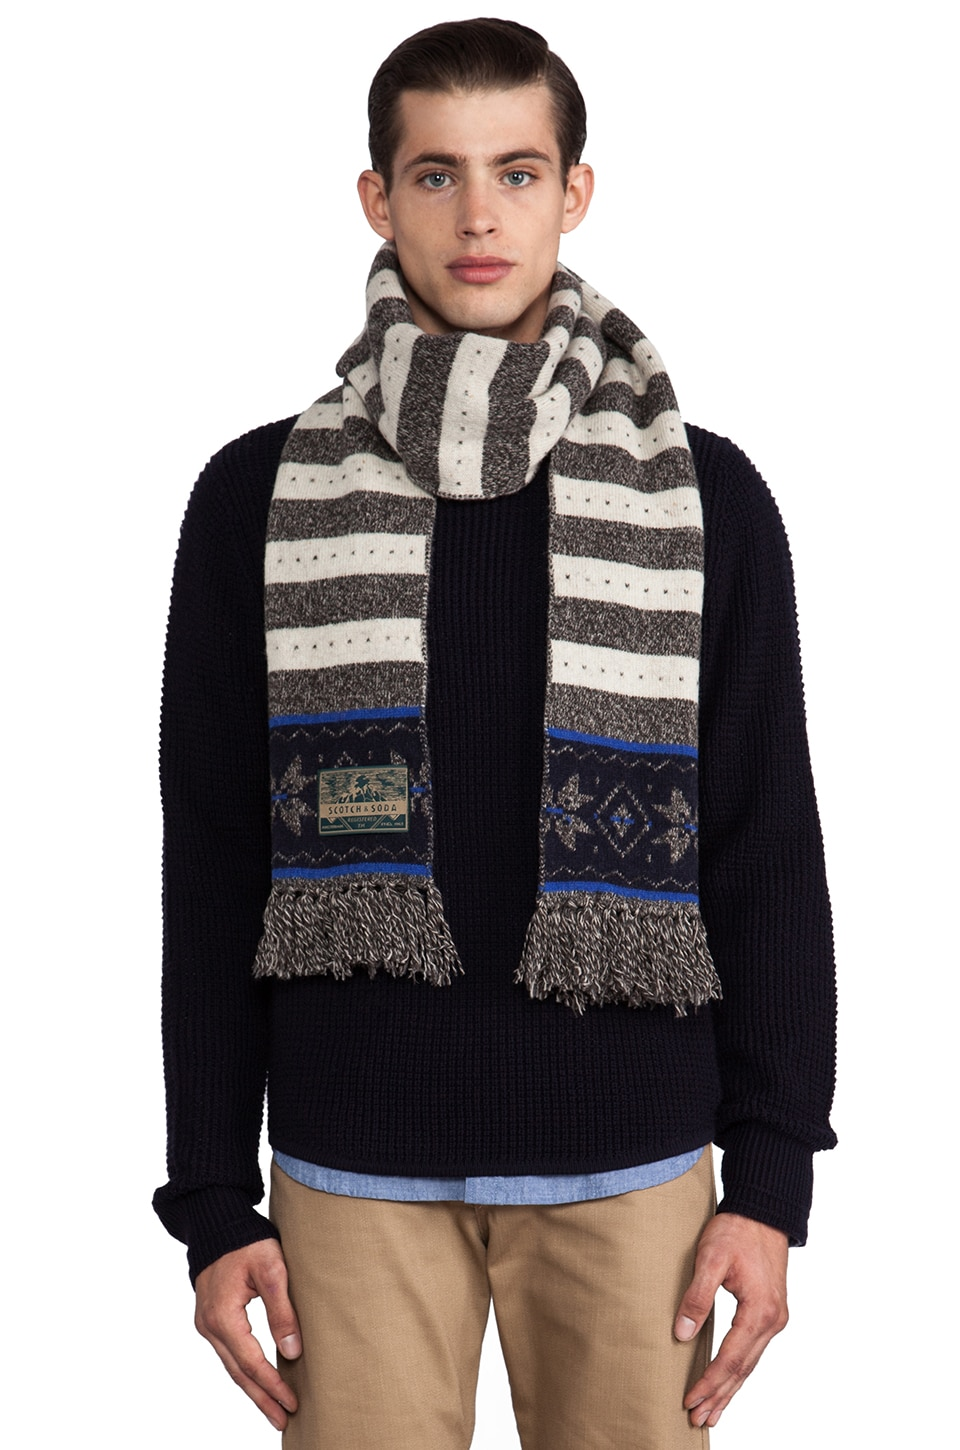 Scotch & Soda Intarsia Knitted Scarf in Off White/Grey